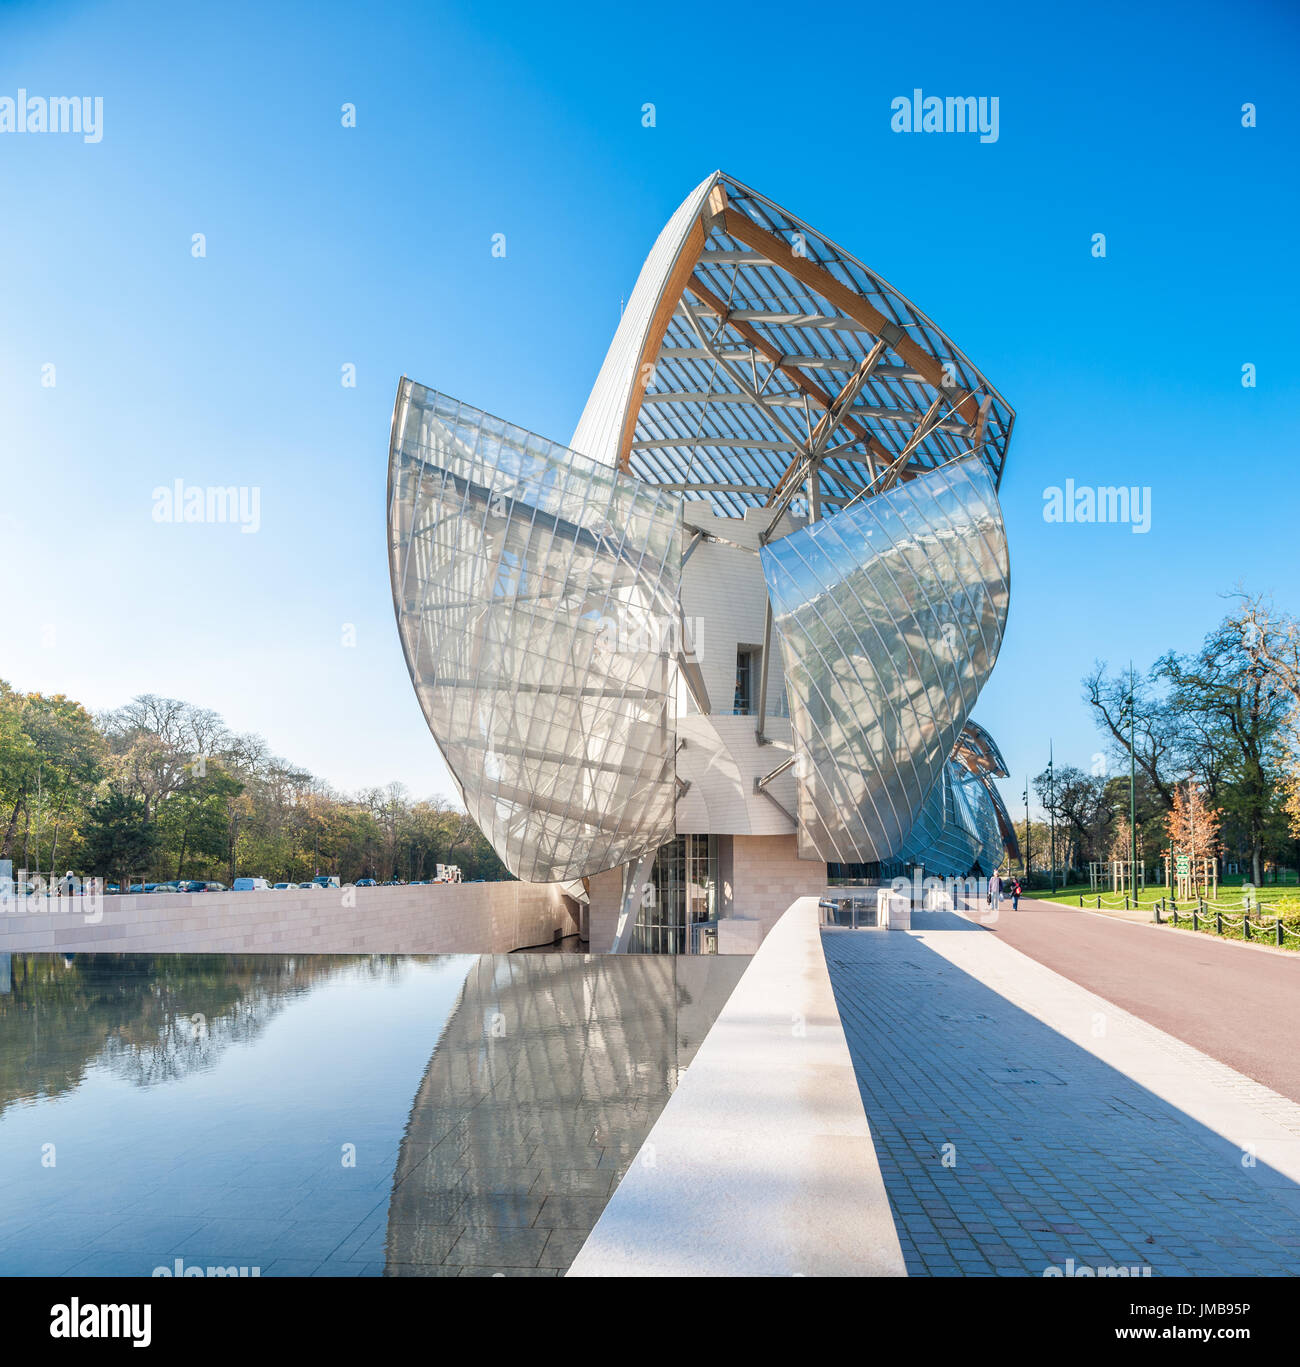 France, Paris, Fondation Louis Vuitton foundation Stock Photo